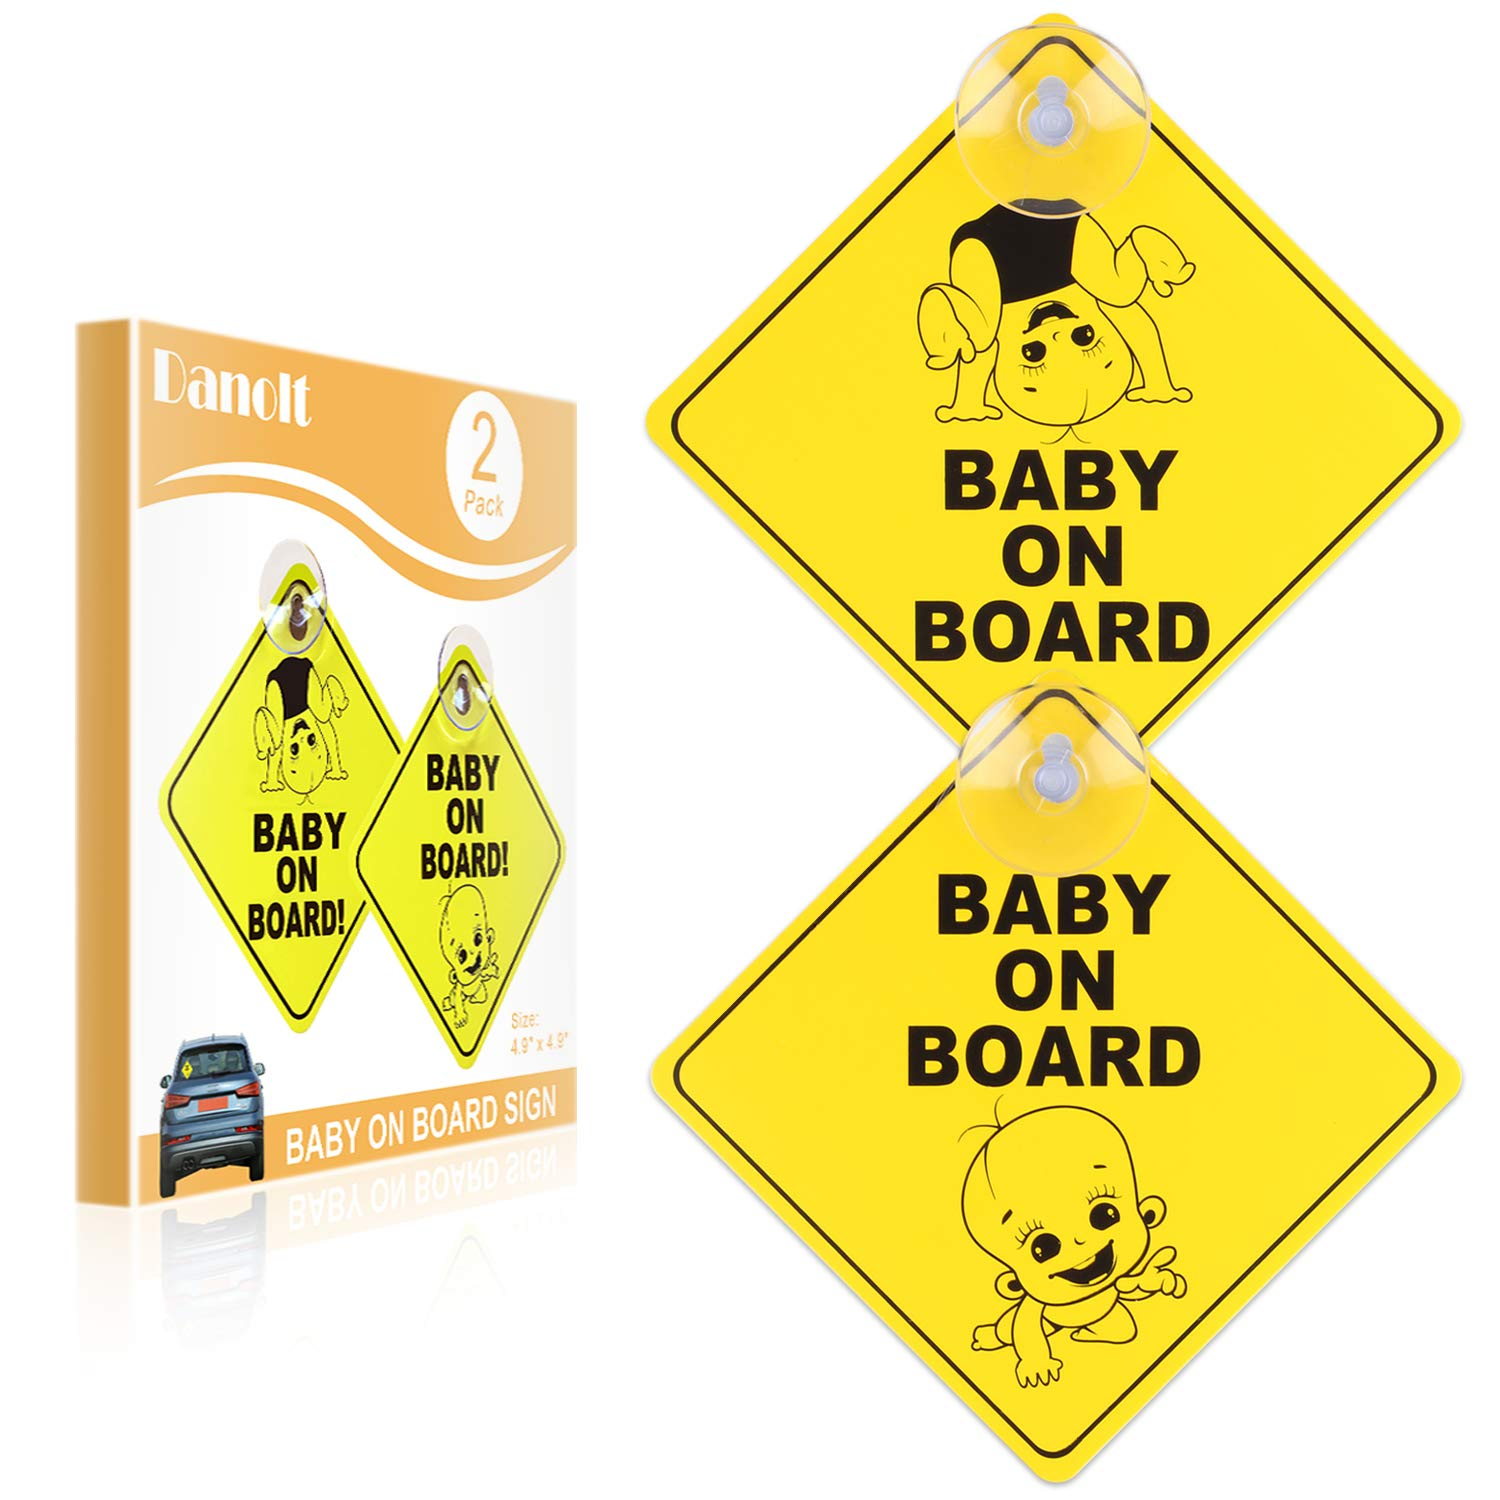 Baby on Board Sign for Car, Danolt 2pcs New Upgrade Thicken Kids Safety Warning Sucker Sticker for Driver, No Fade, Reflective, Removable